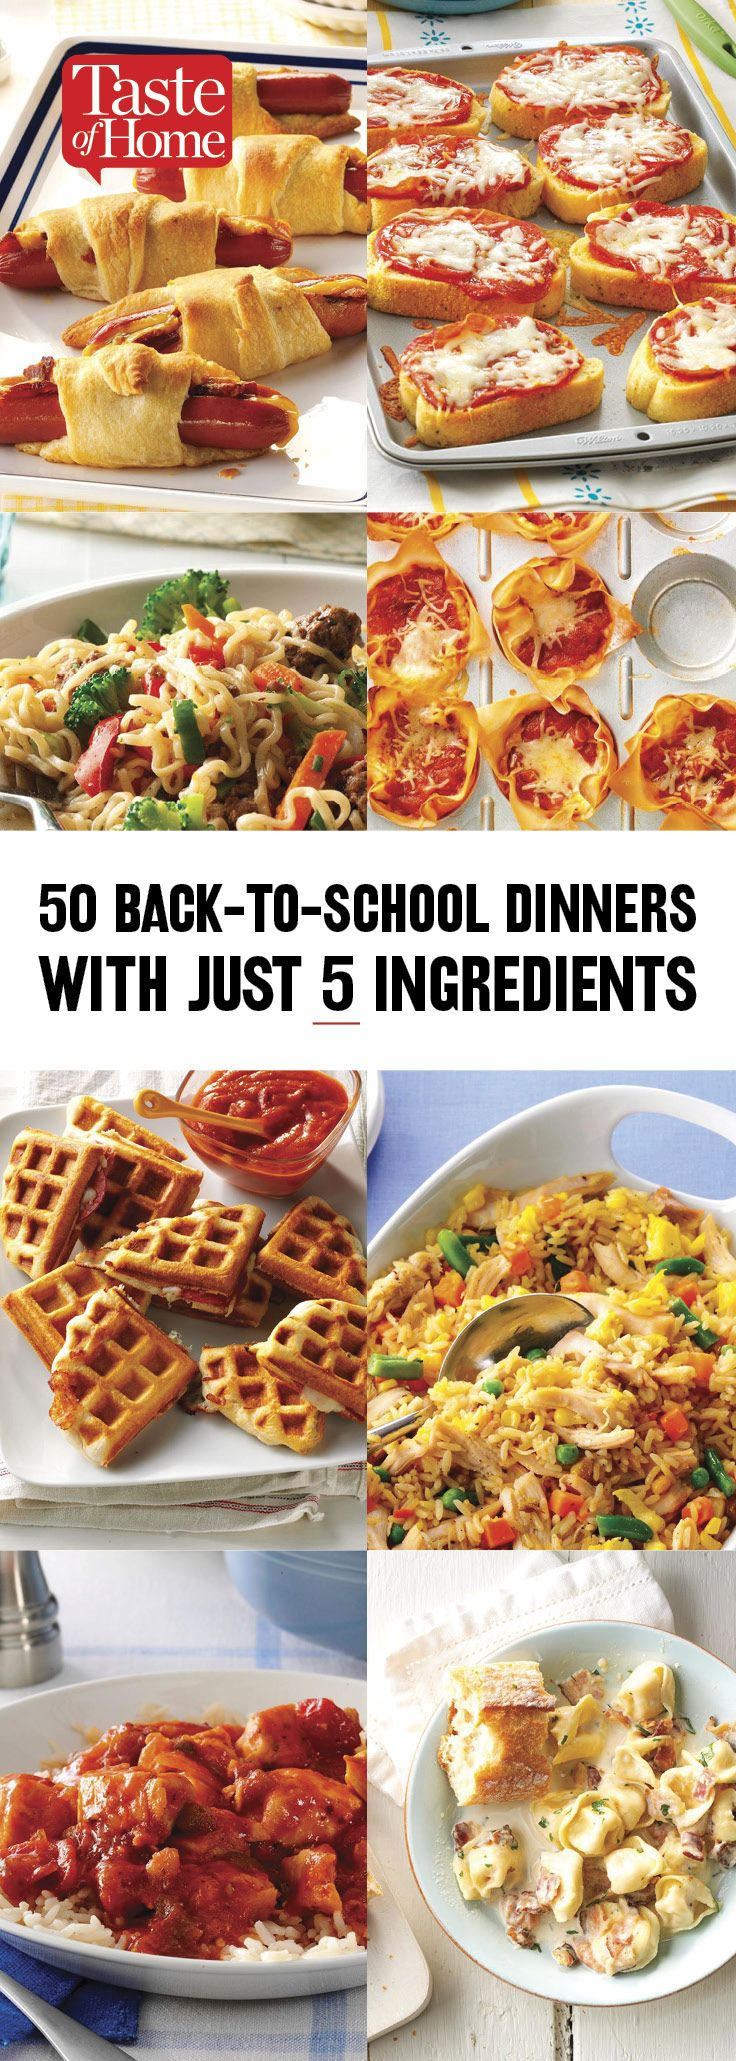 50 Back-to-School Dinners with Just 5 Ingredients images